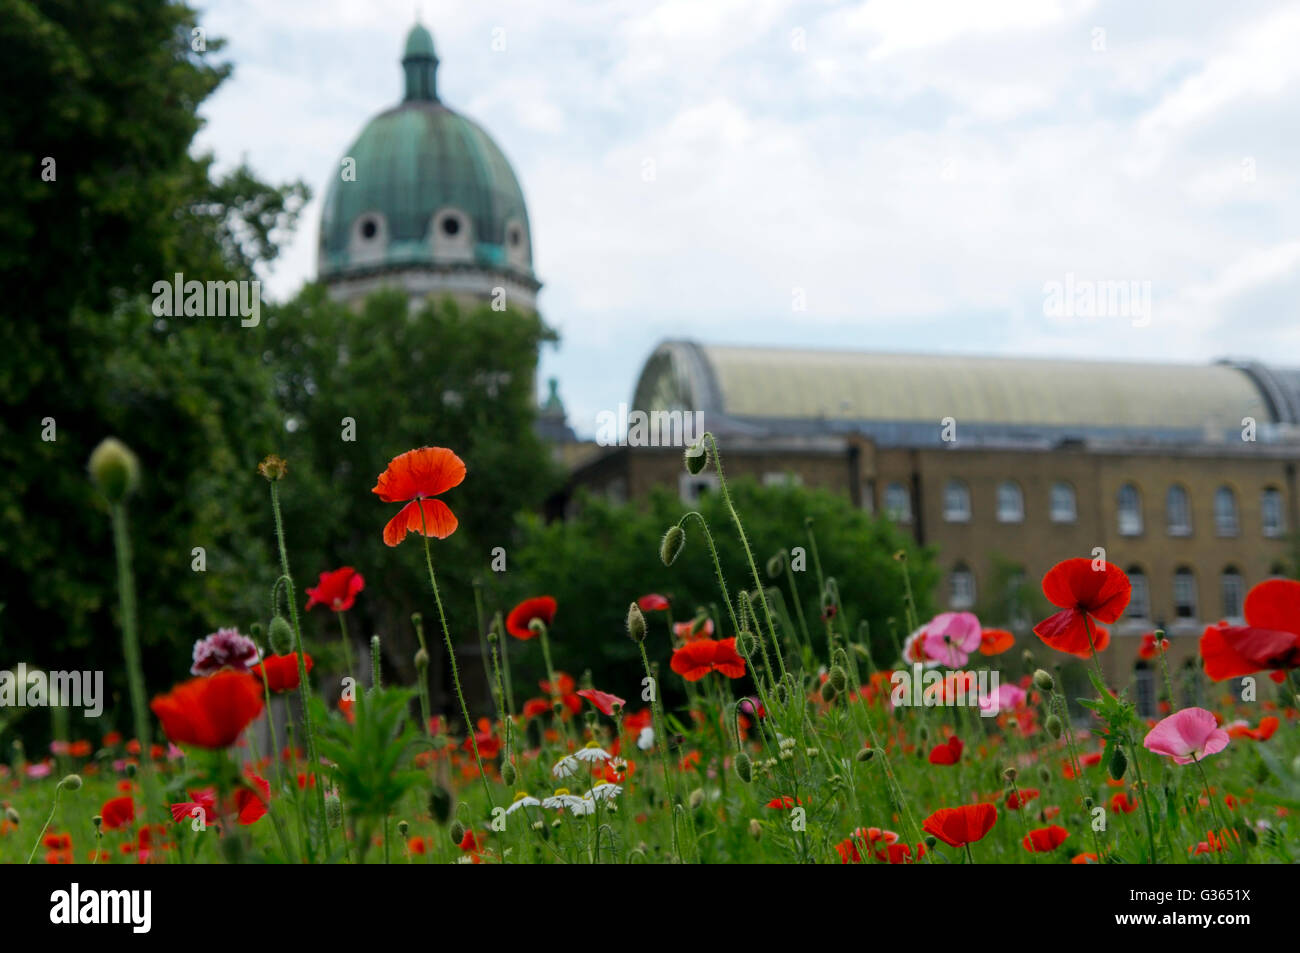 Poppies planted in front of the Imperial War Museum in London. - Stock Image